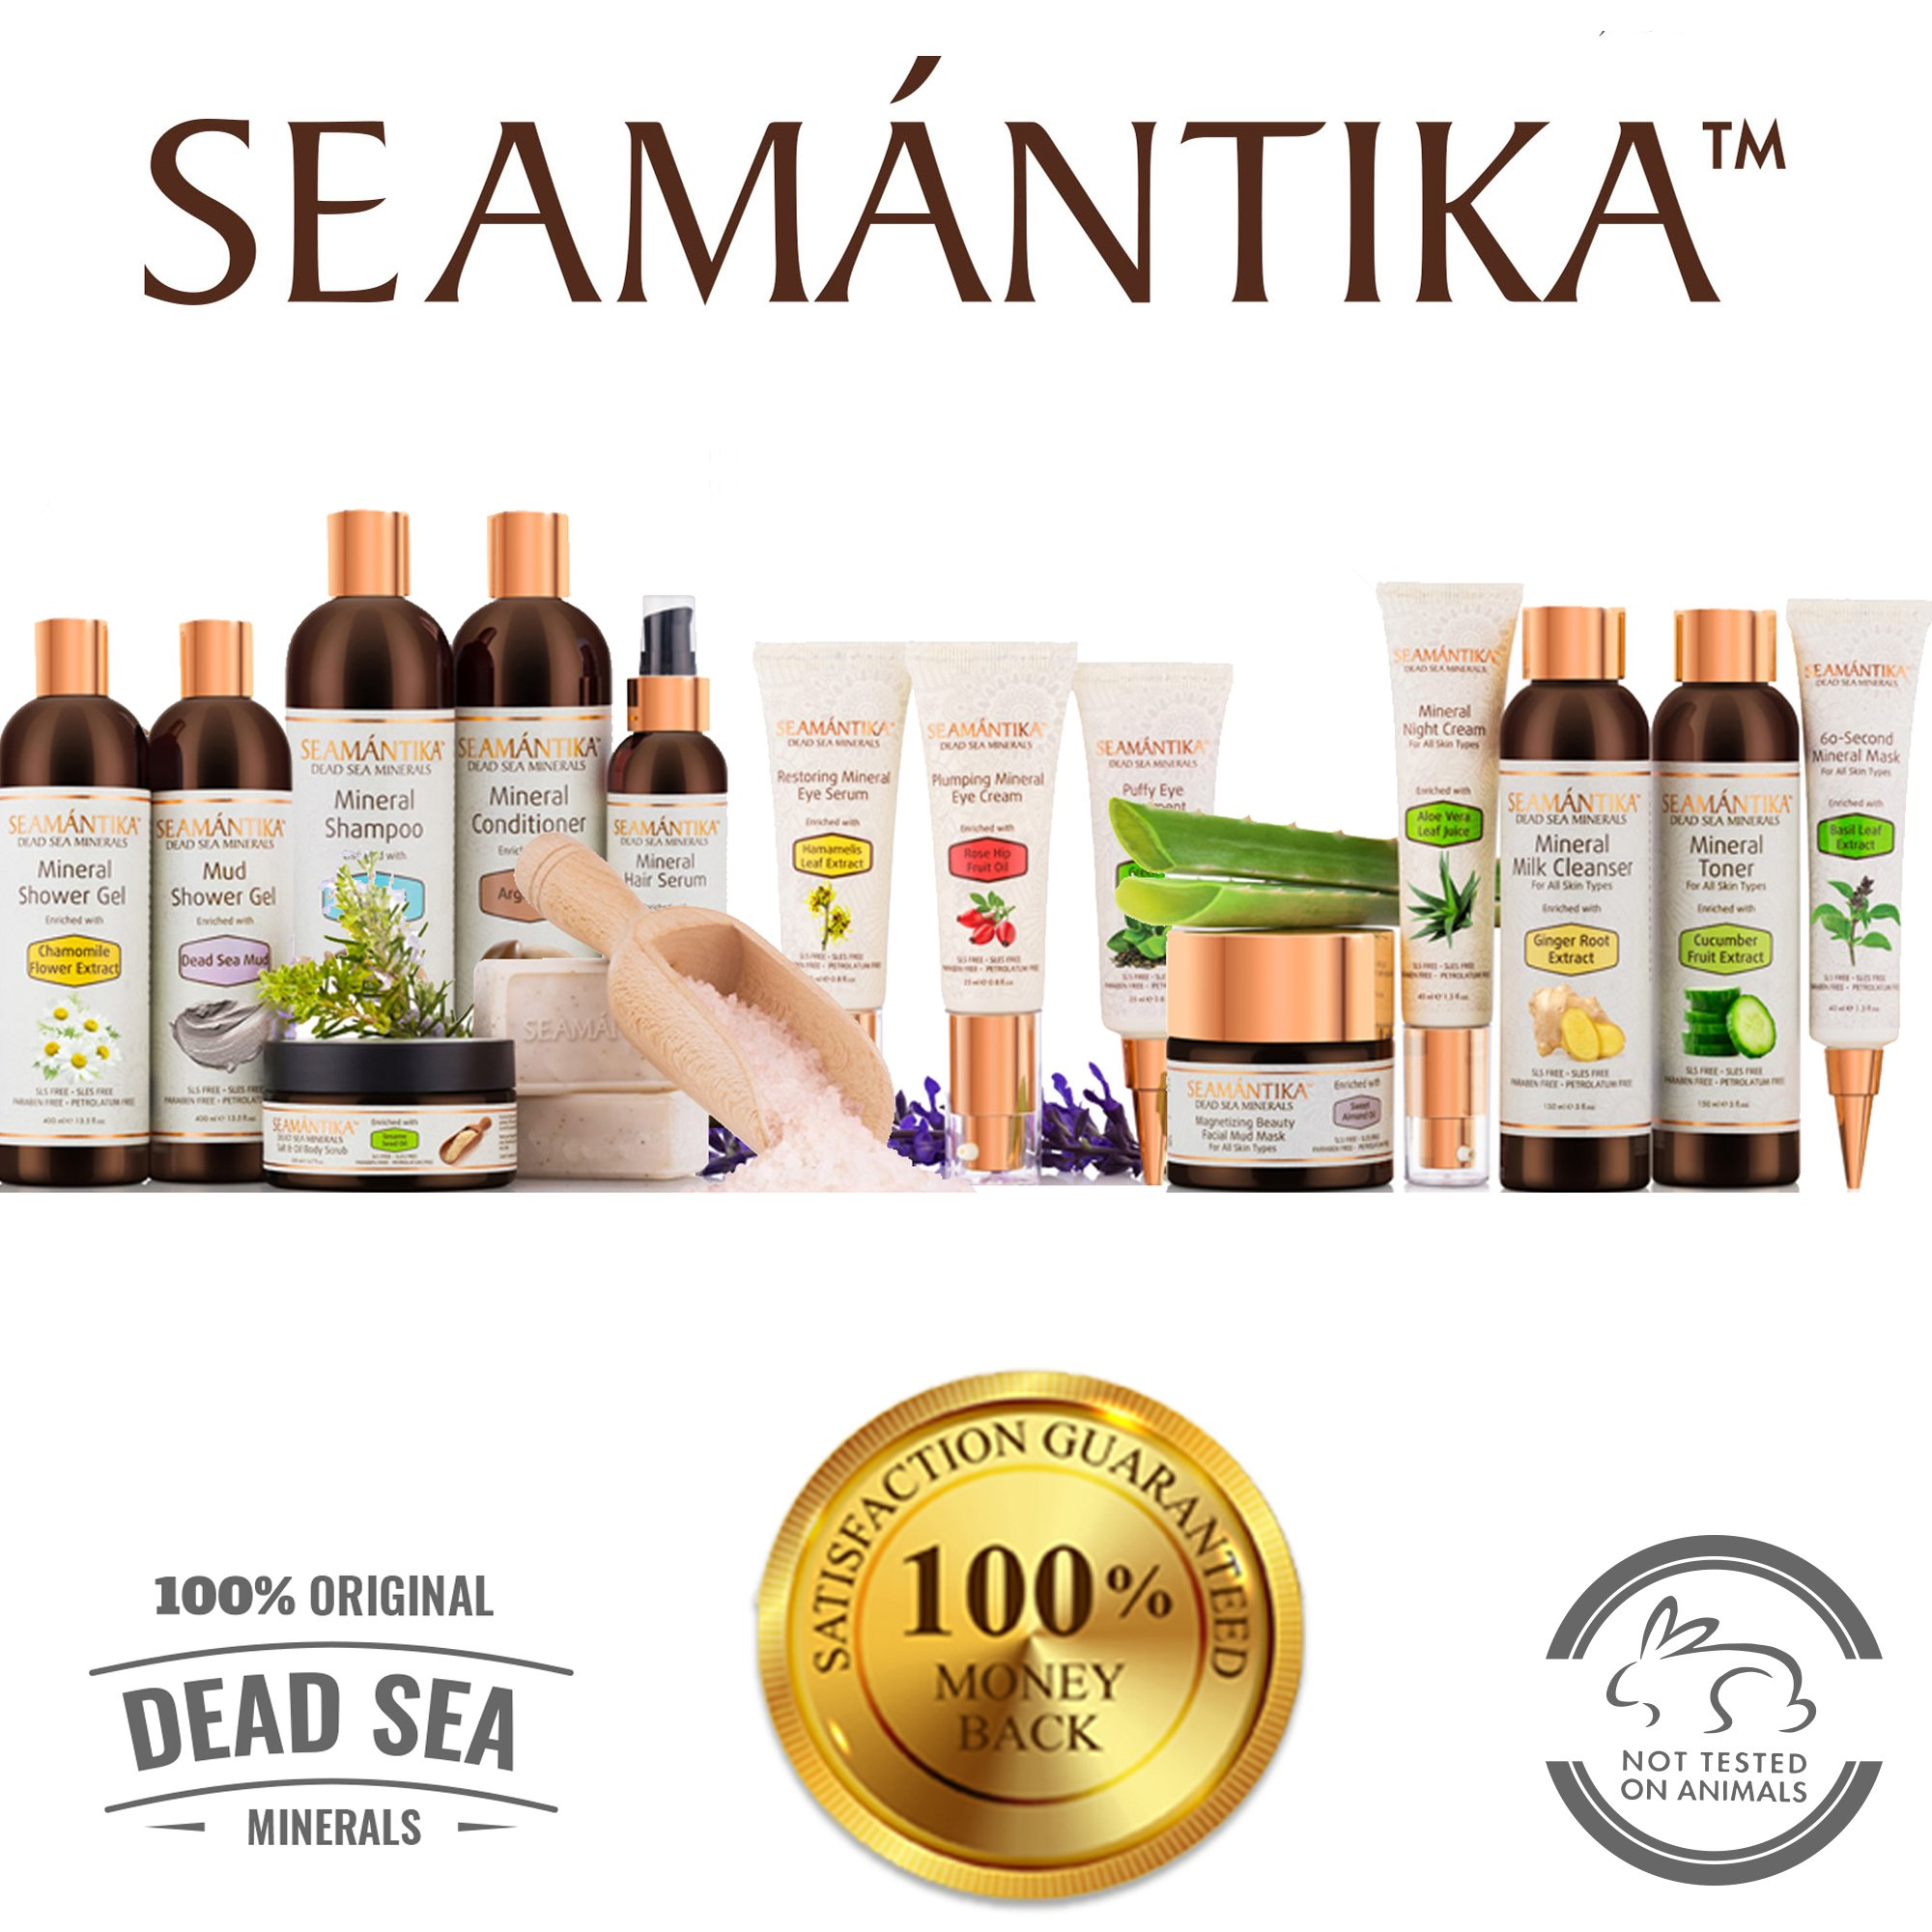 Puffy Eye Treatment Instant results – Naturally Eliminate Wrinkles, Puffiness, Dark Circle and Bags in Minutes – Hydrating Eye Cream w/Green Tea Extract, Dead Sea Minerals by SEAMANTIKA – .8 oz by SEAMANTIKA (Image #8)